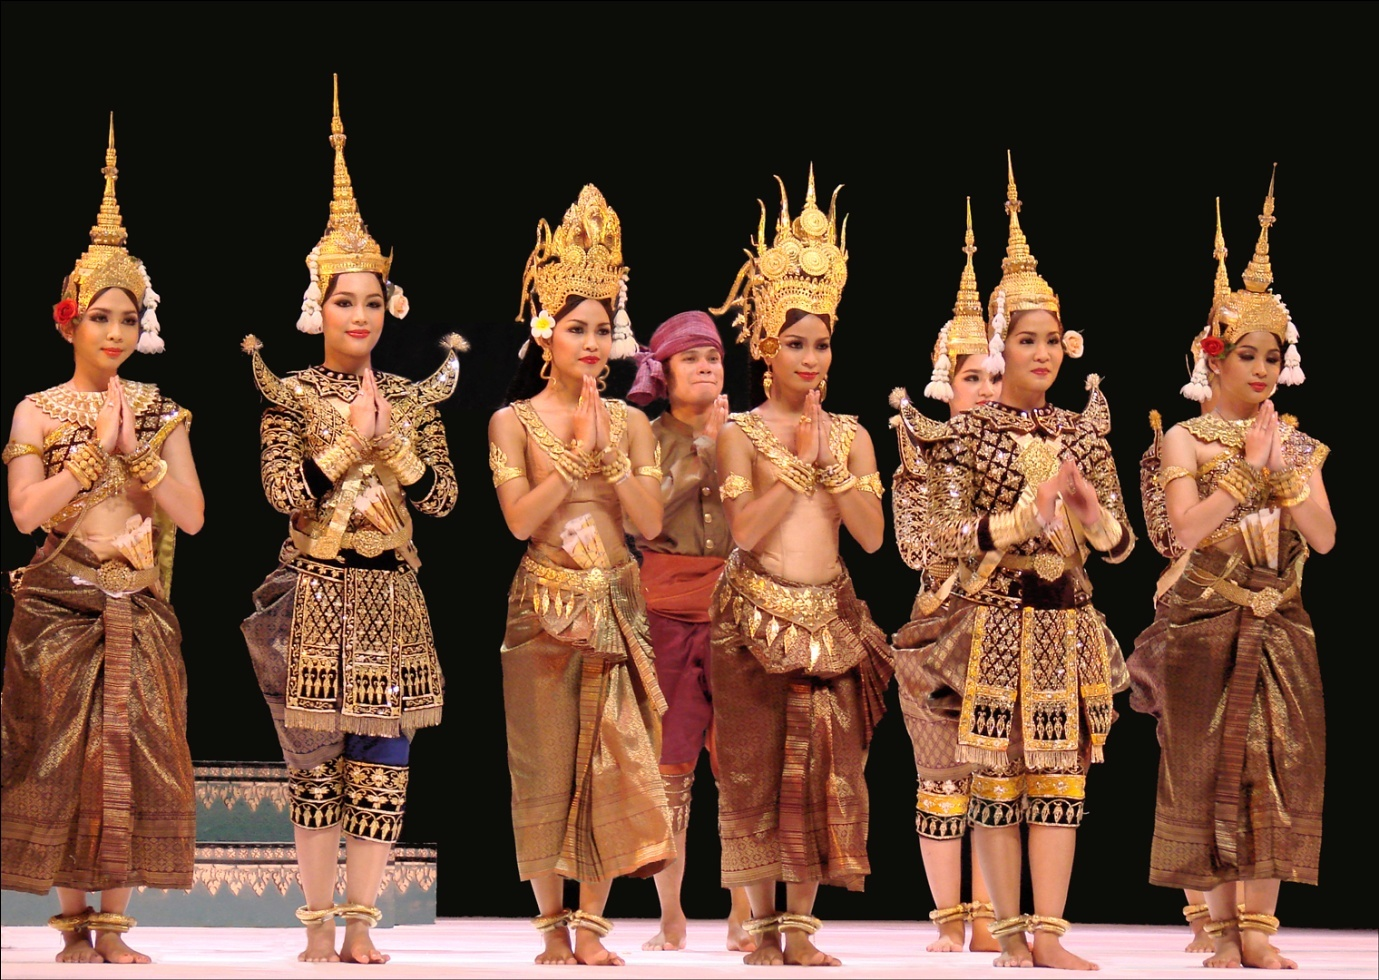 Apsara Dance - The Elegance & Grace of Angkor